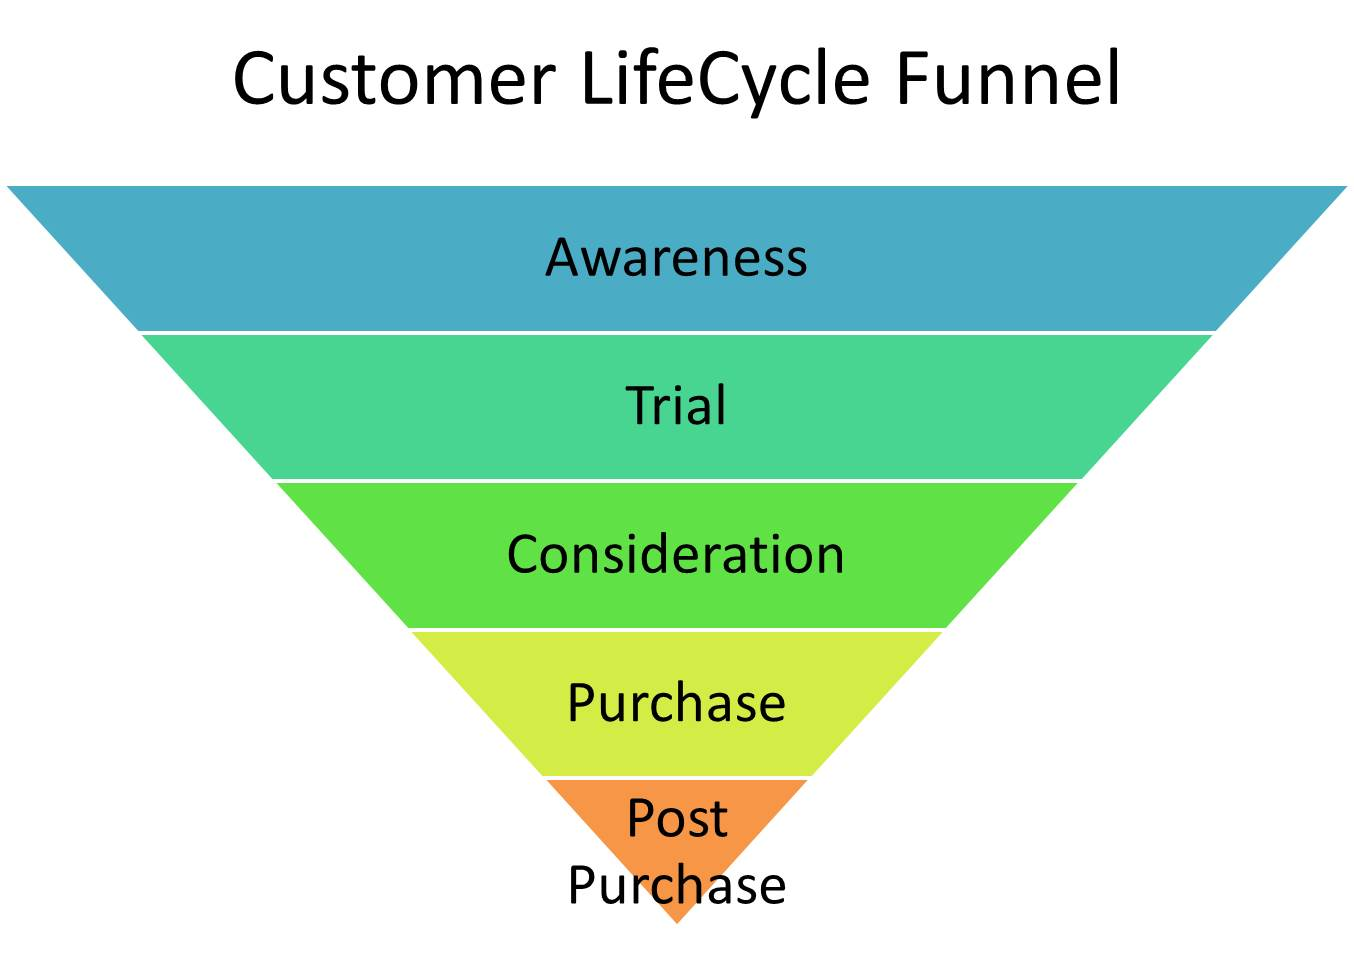 Customer LifeCycle Funnel